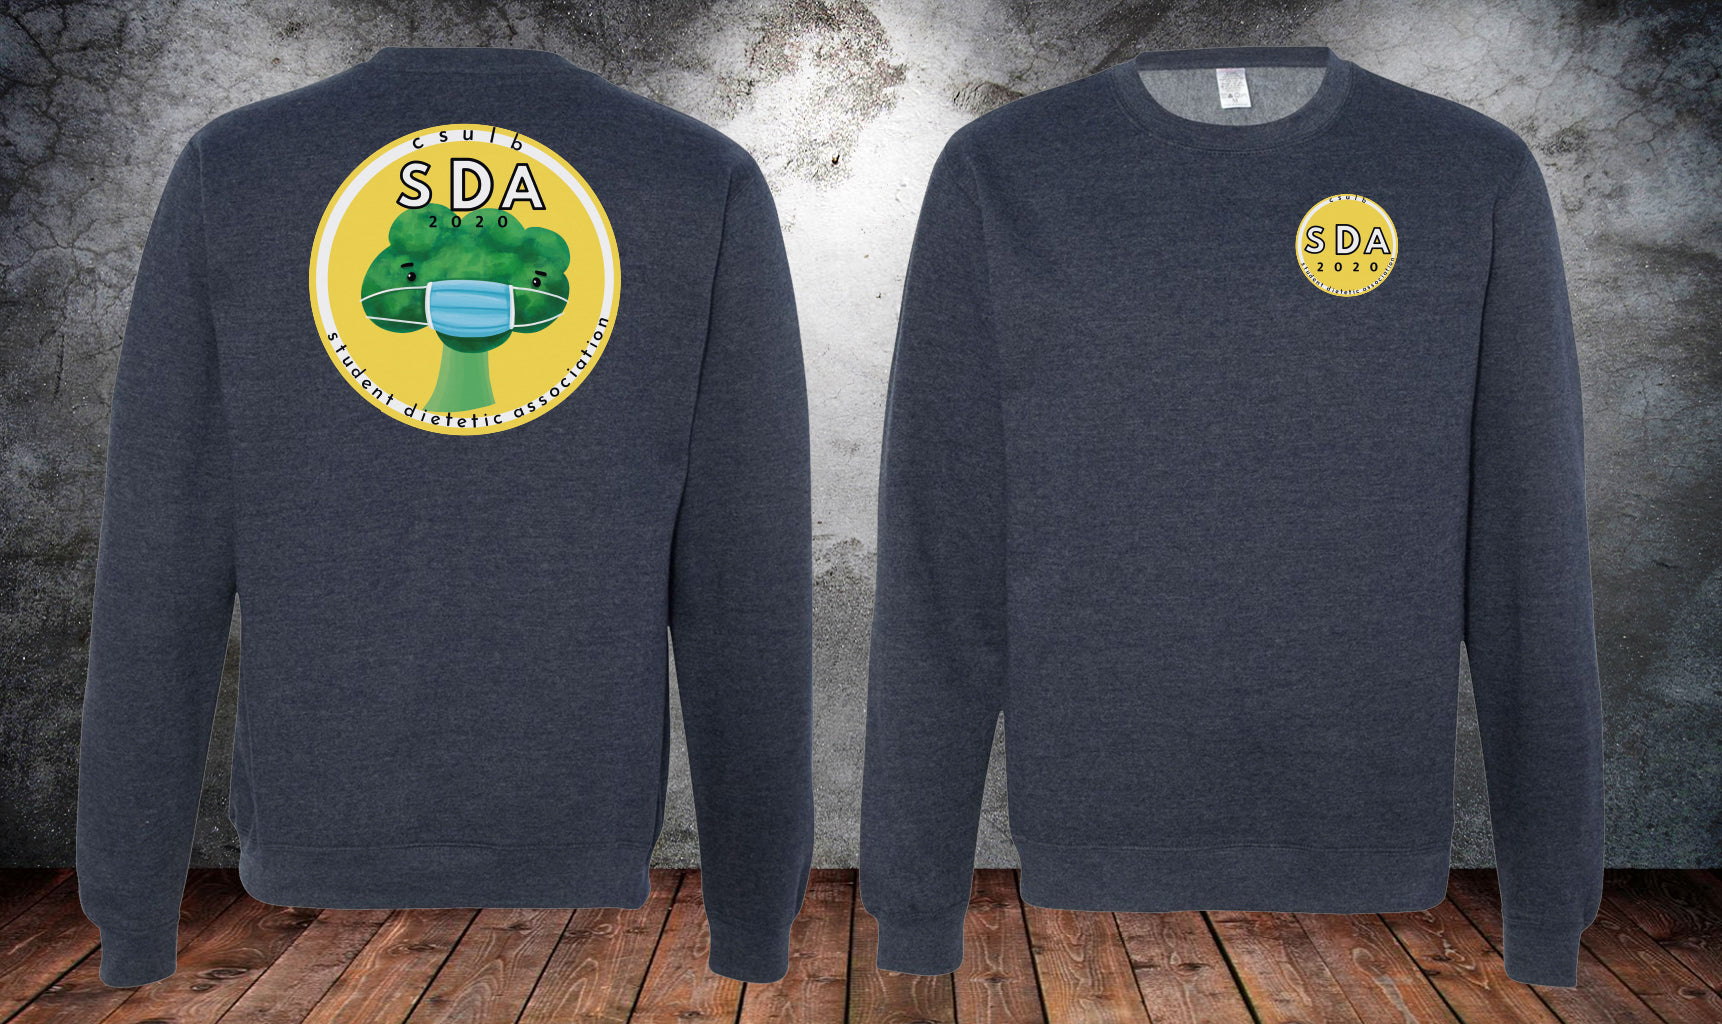 SDA Broccoli Sweater